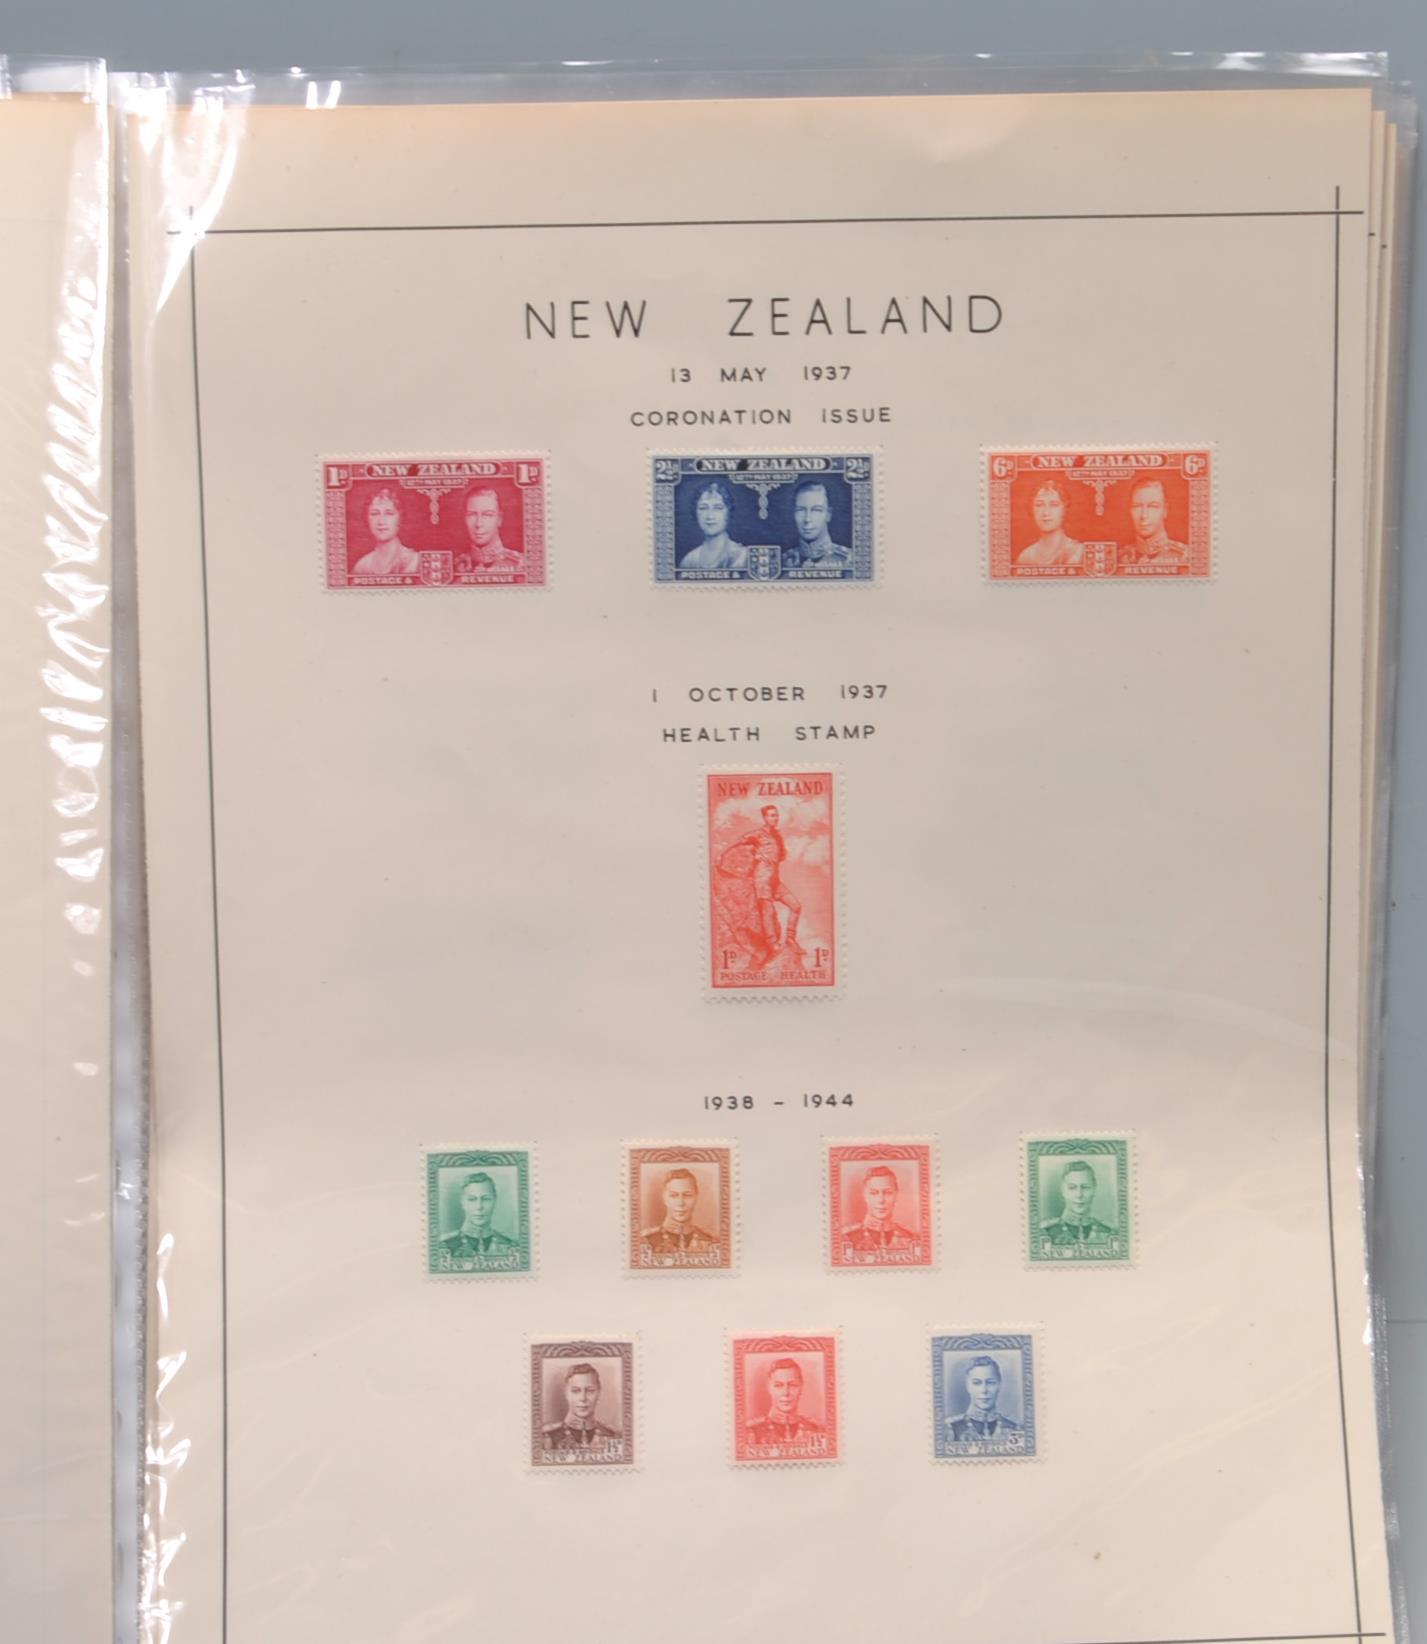 NEW ZEALAND MINT COLLECTION OF POSTAGE STAMPS - Image 2 of 8